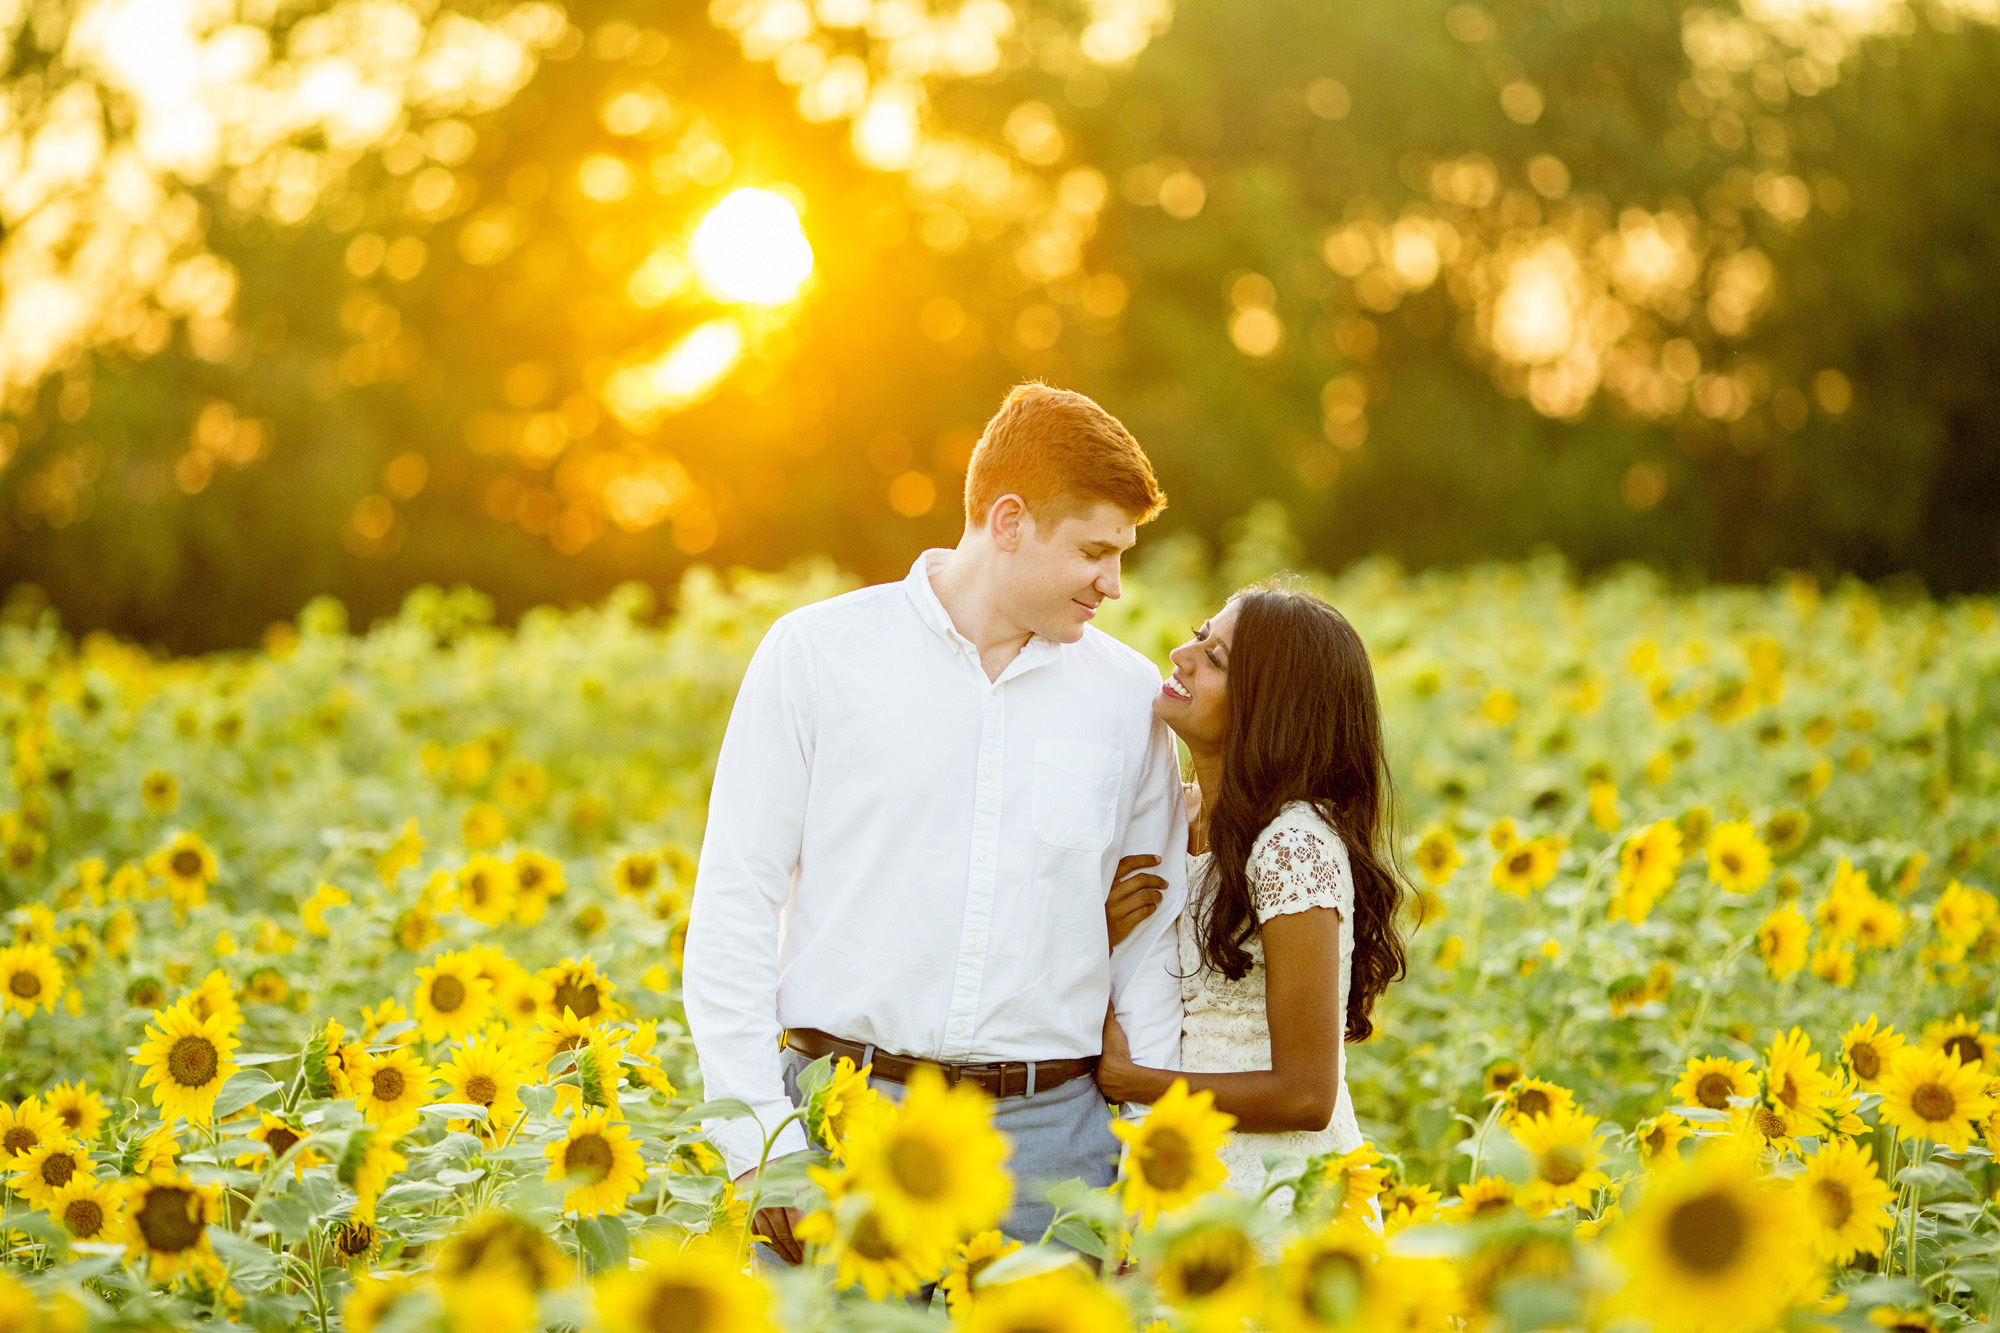 Seriously_Sabrina_Photography_Lexington_Midway_Kentucky_Engagement_Merefield_Sunflowers_Naz_and_Drew19.jpg